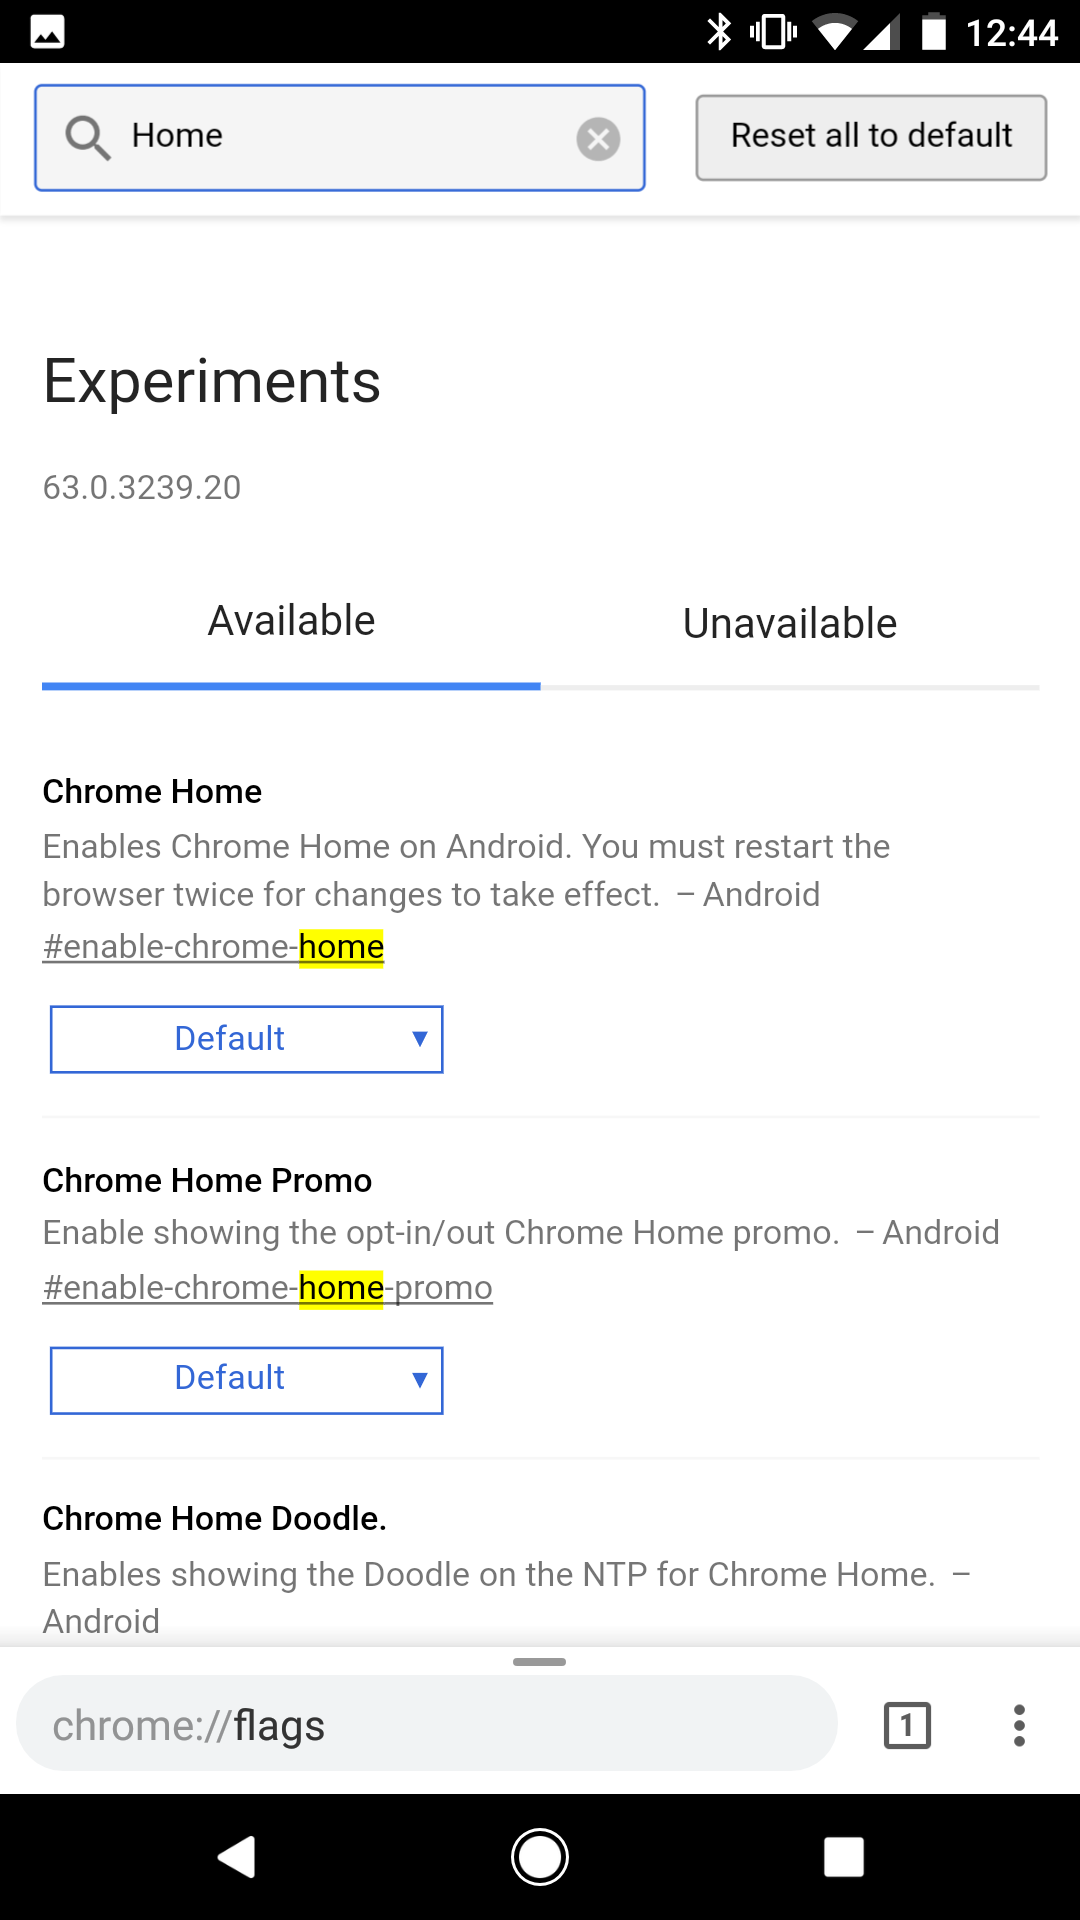 Chrome Beta 63 adds new flags page, changes to Chrome Home UI, and